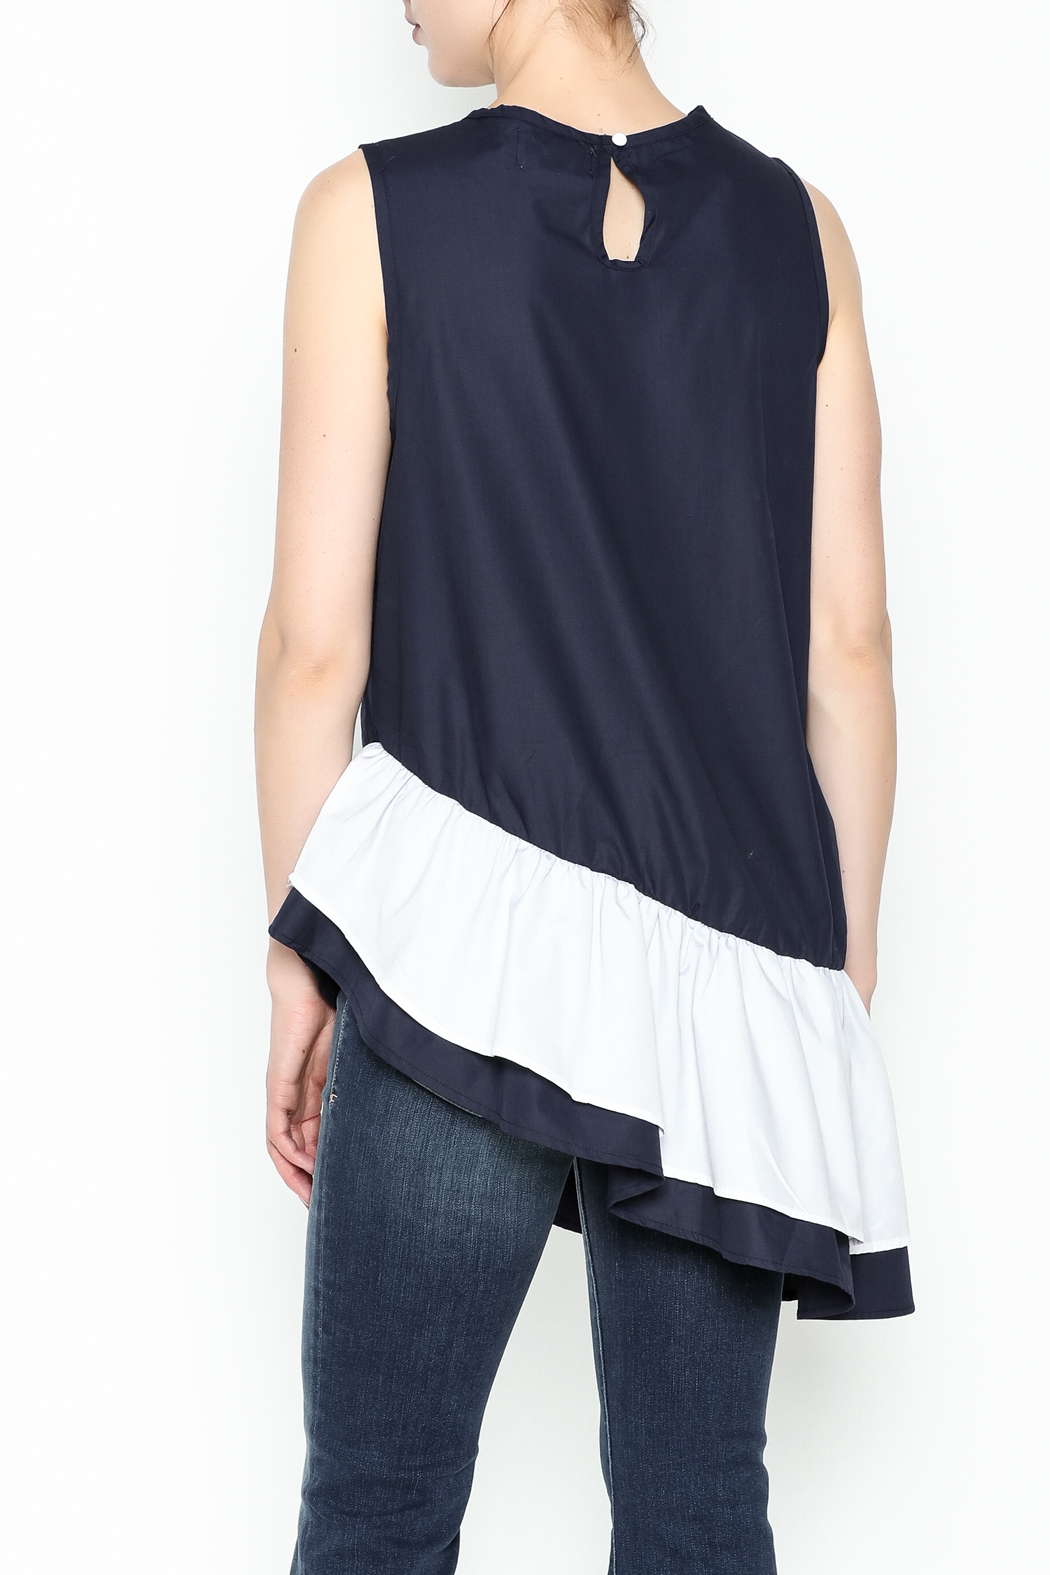 Pink Penguin Multicolor Asymmetry Top - Back Cropped Image